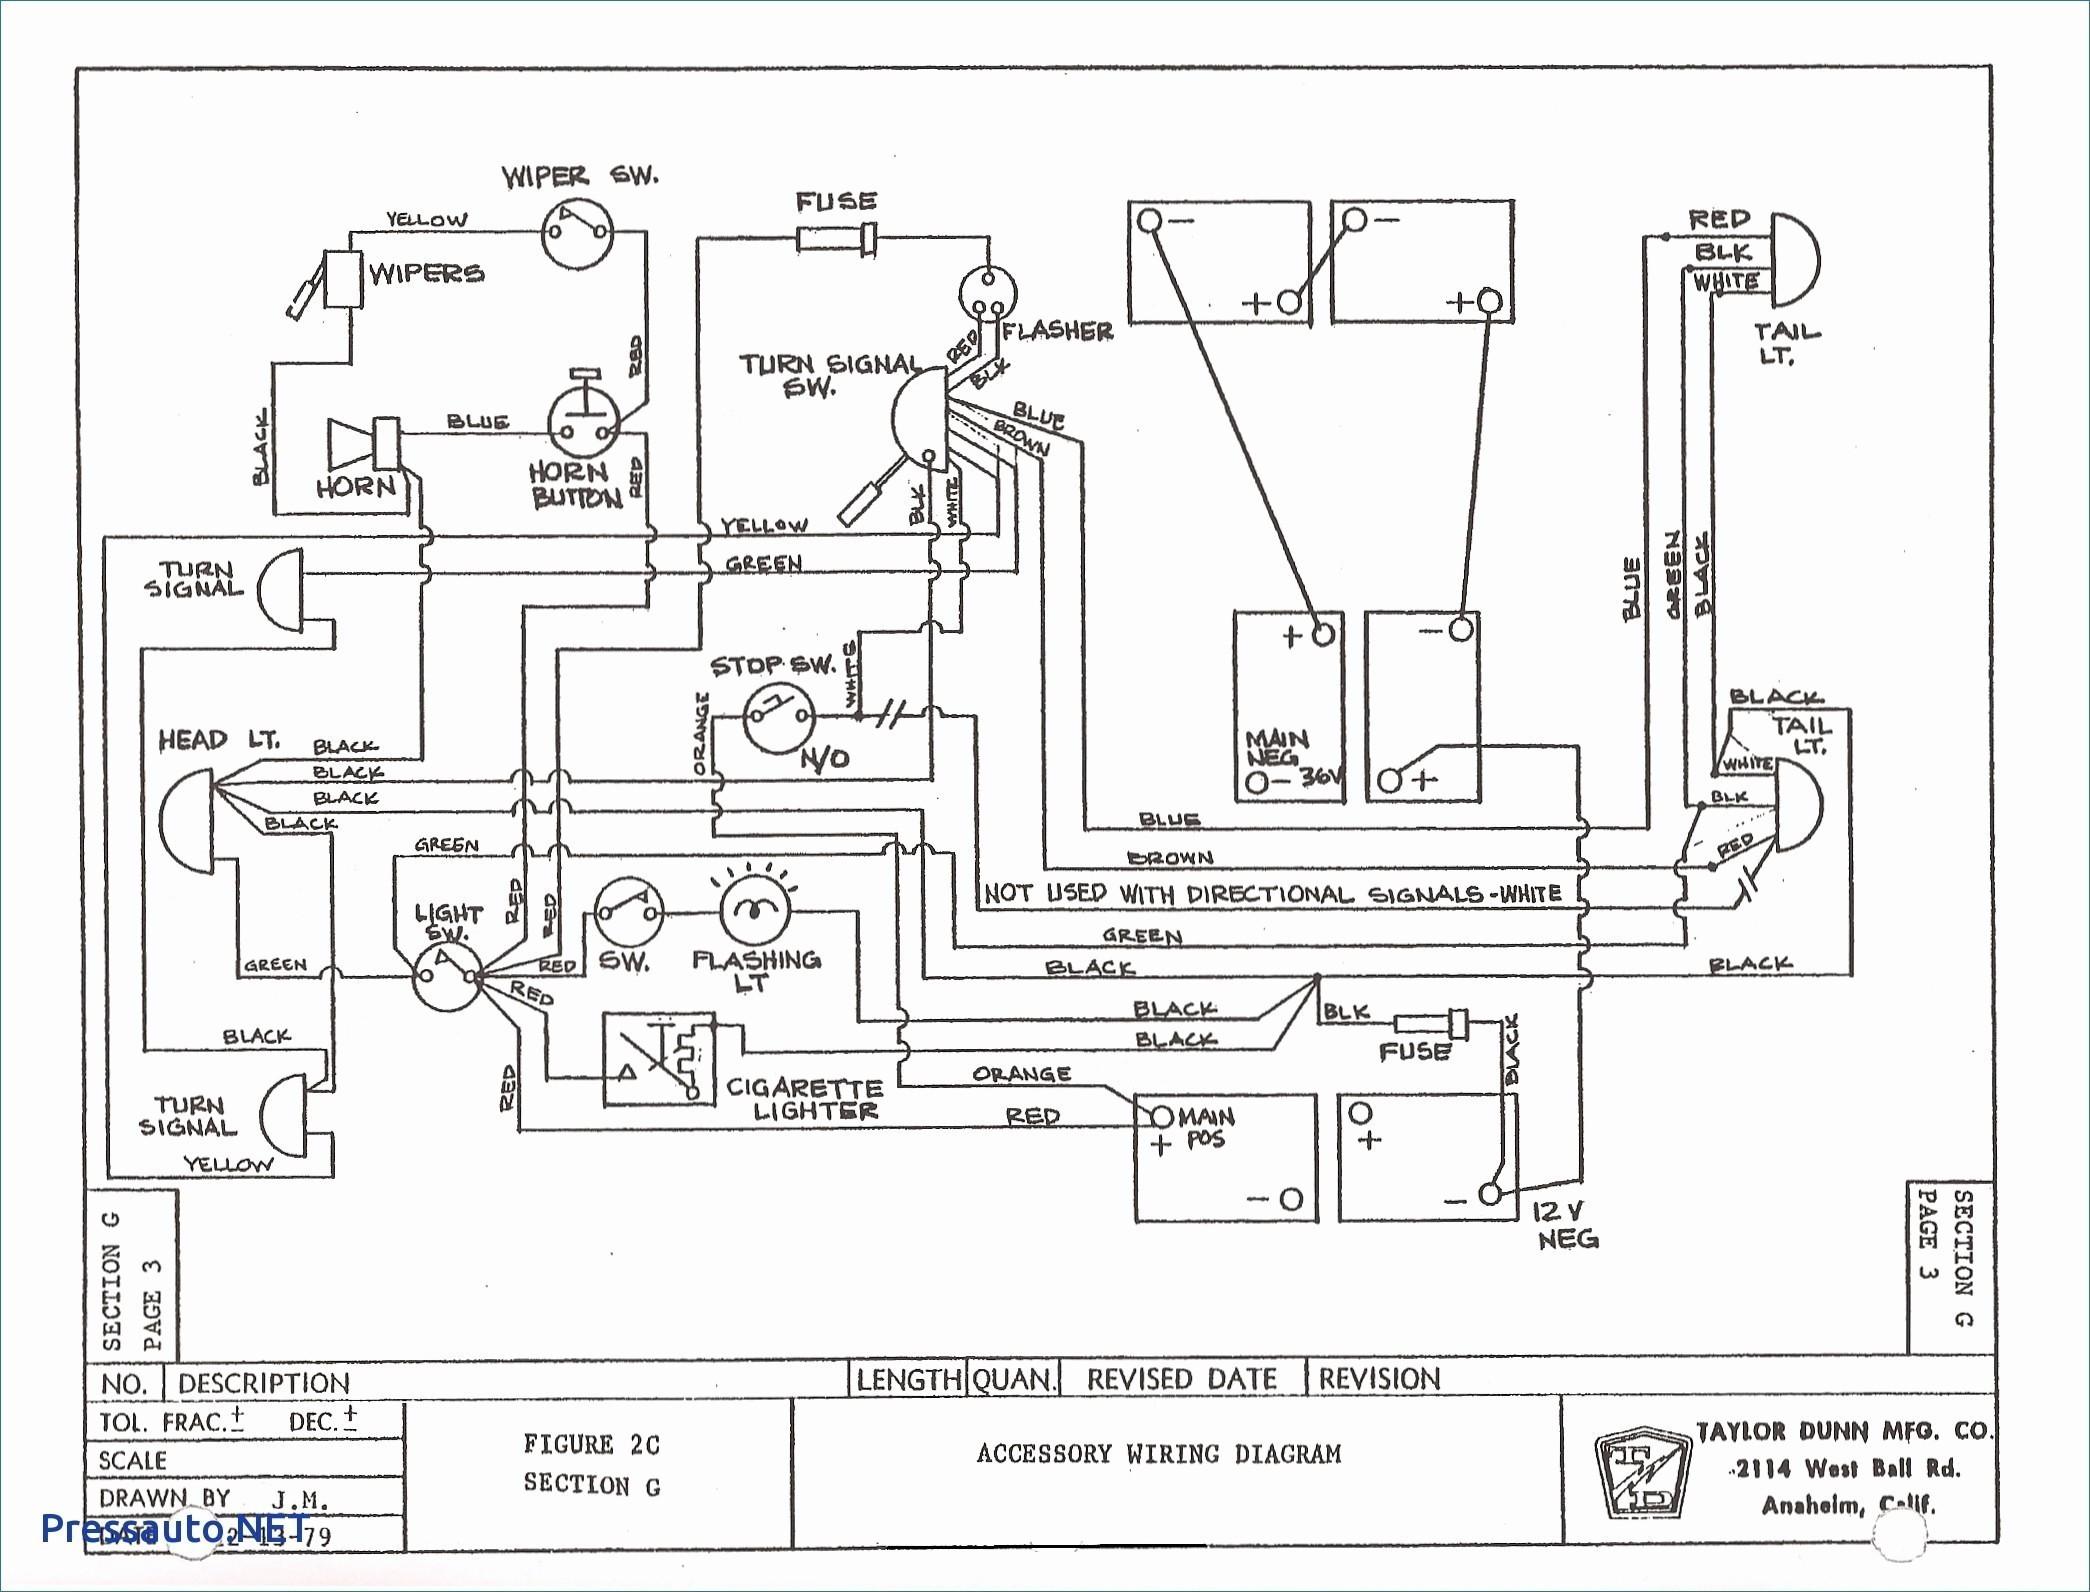 1986 Club Car Wiring Diagram 591 Ez Go Golf Cart Parts Diagram Of 1986 Club Car Wiring Diagram